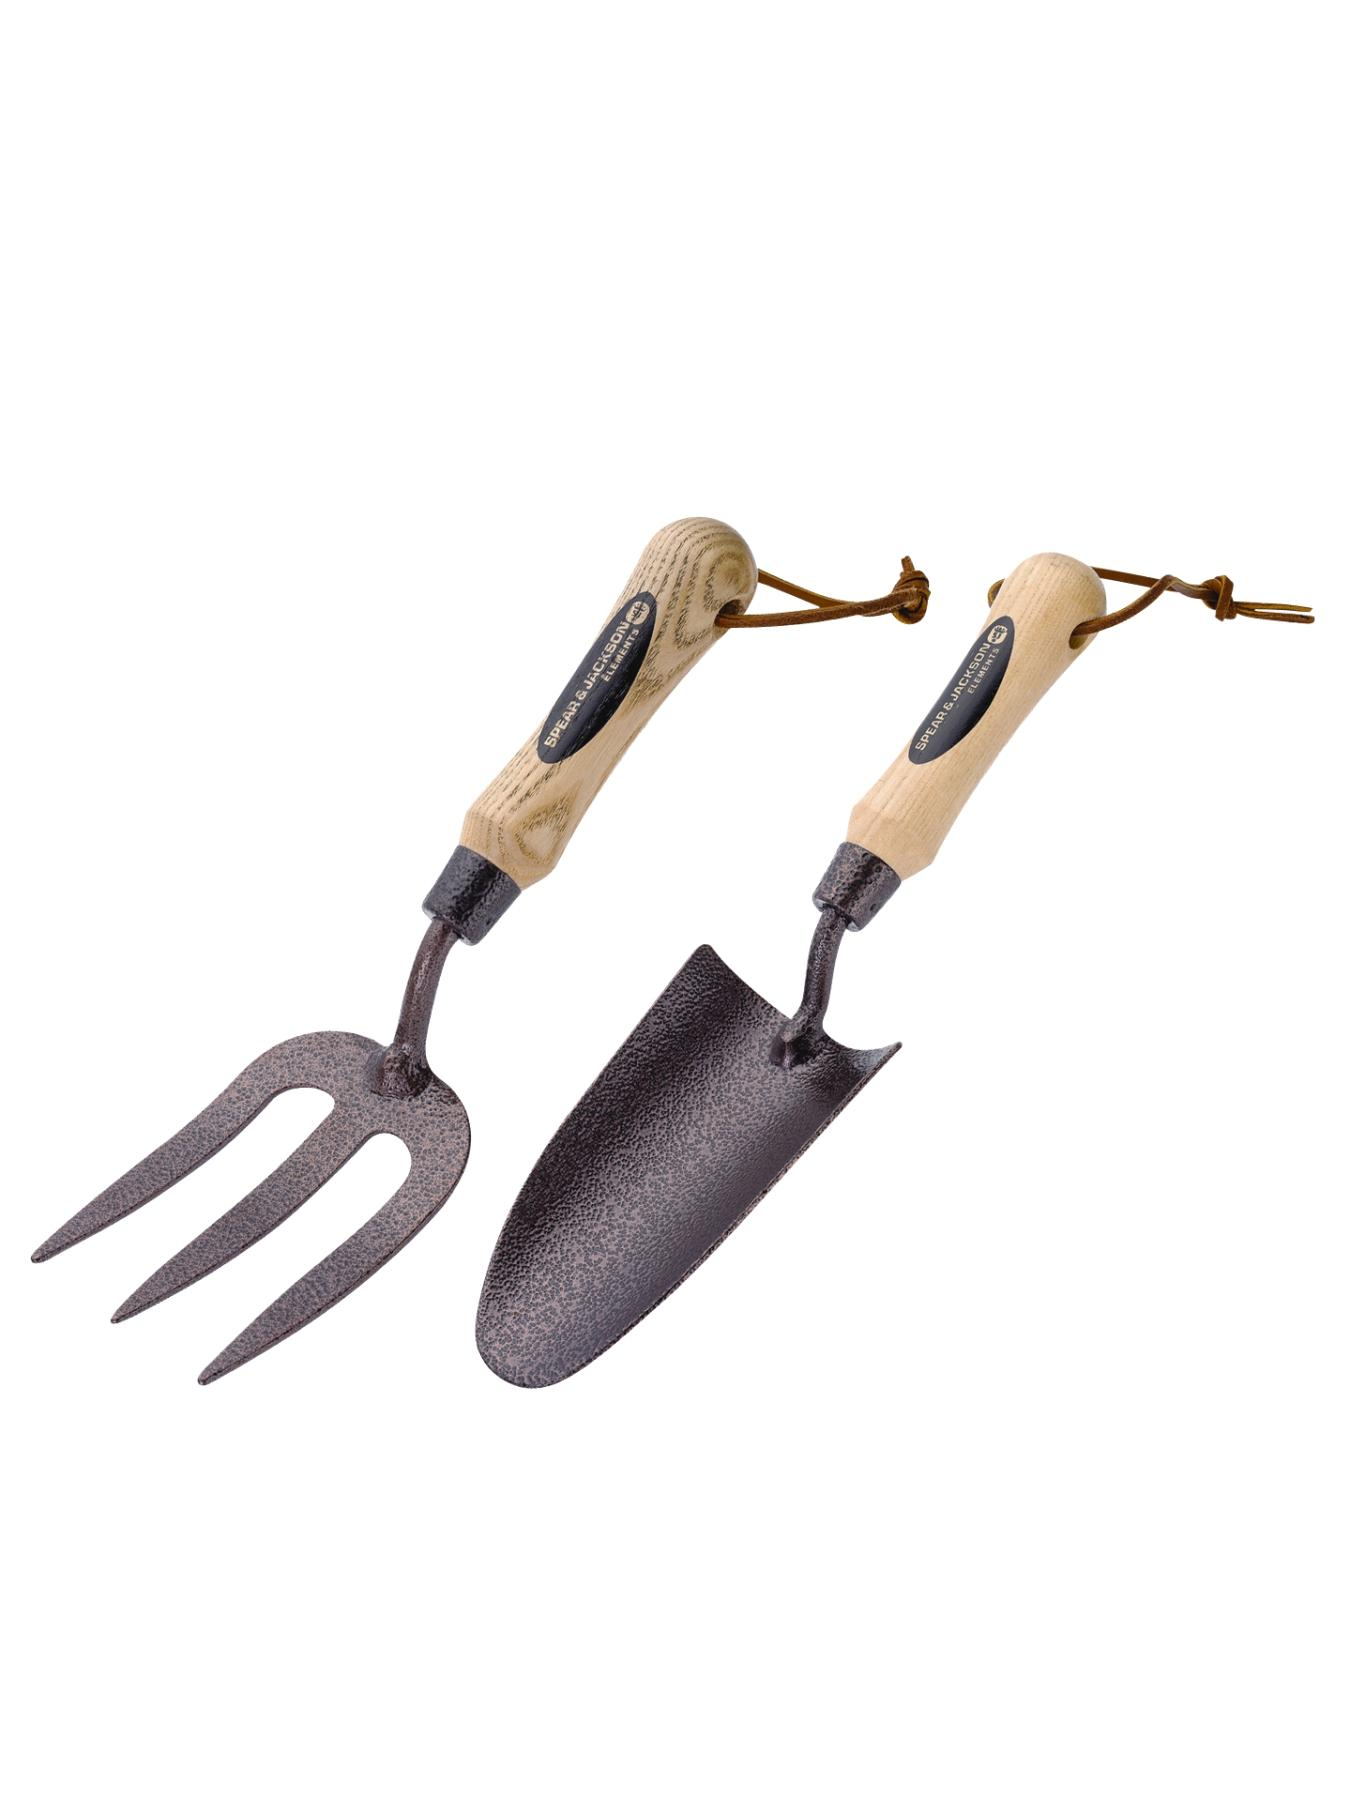 Weedfork and Trowel Set